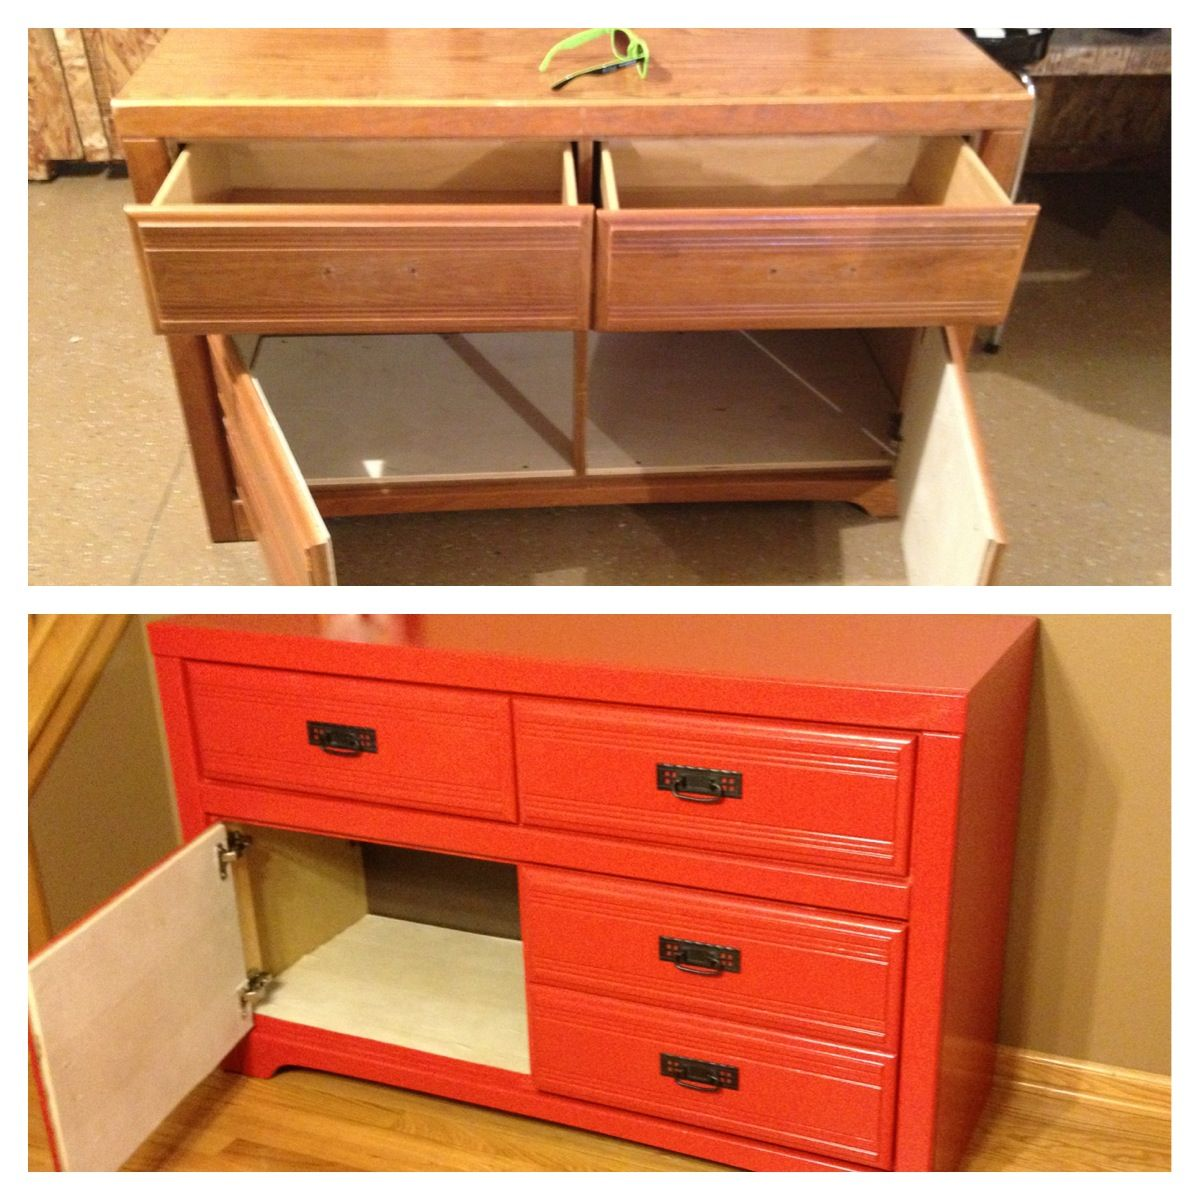 Diy Dresser Makeover Remove Drawers And Attach Doors Hinges For Shoes Diy Dresser Diy Dresser Makeover Dresser Makeover Dresser with doors and drawers